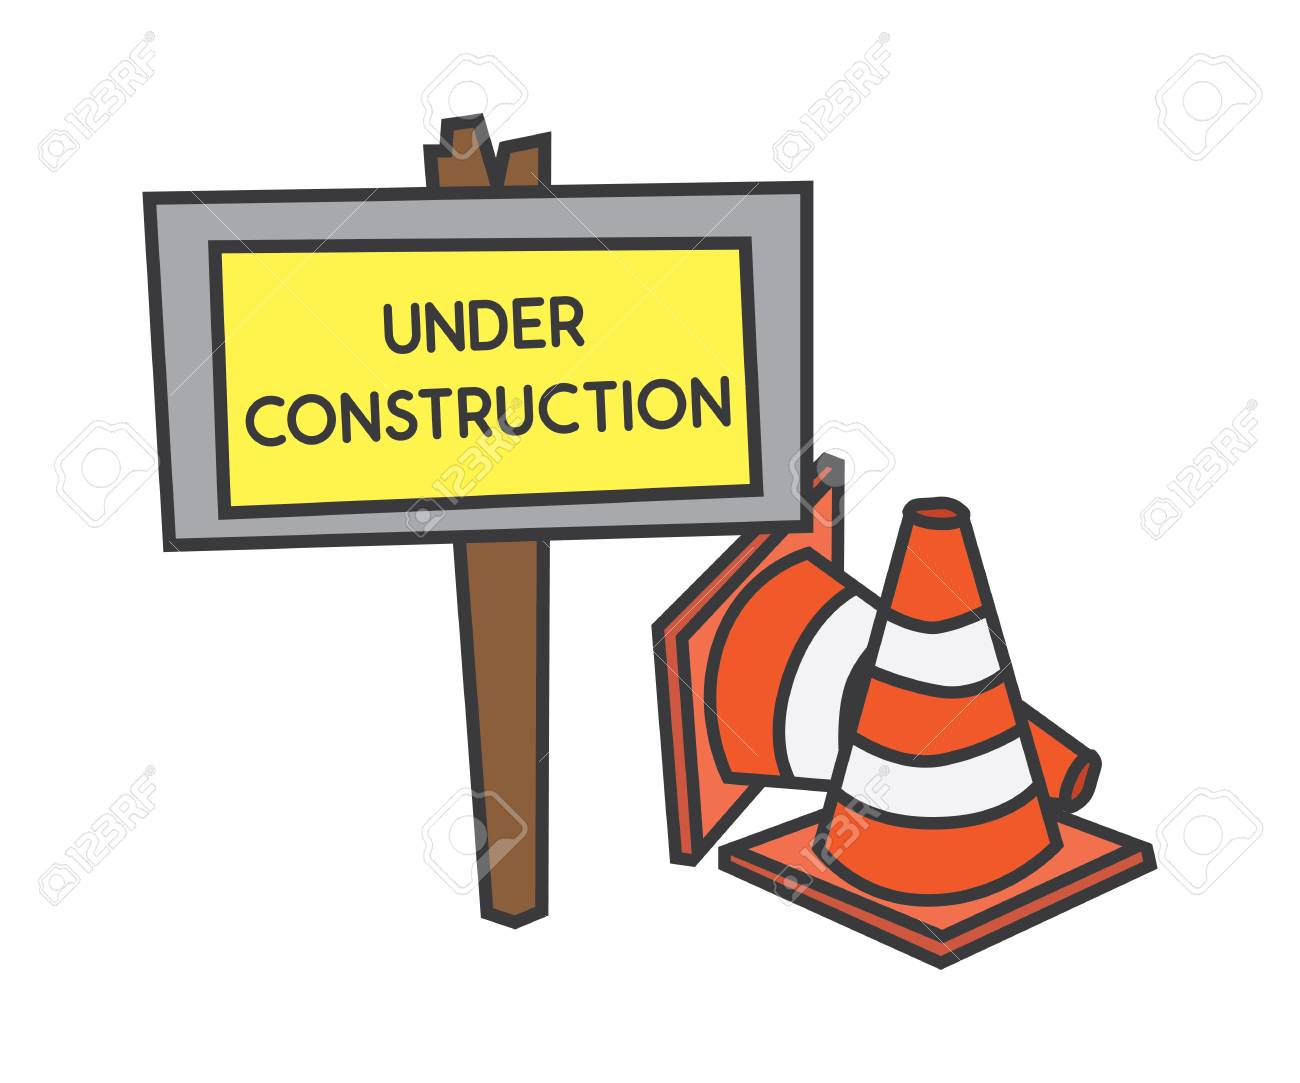 Under Construction Cartoon Design Illustration Royalty Free Cliparts Vectors And Stock Illustration Image 95980348